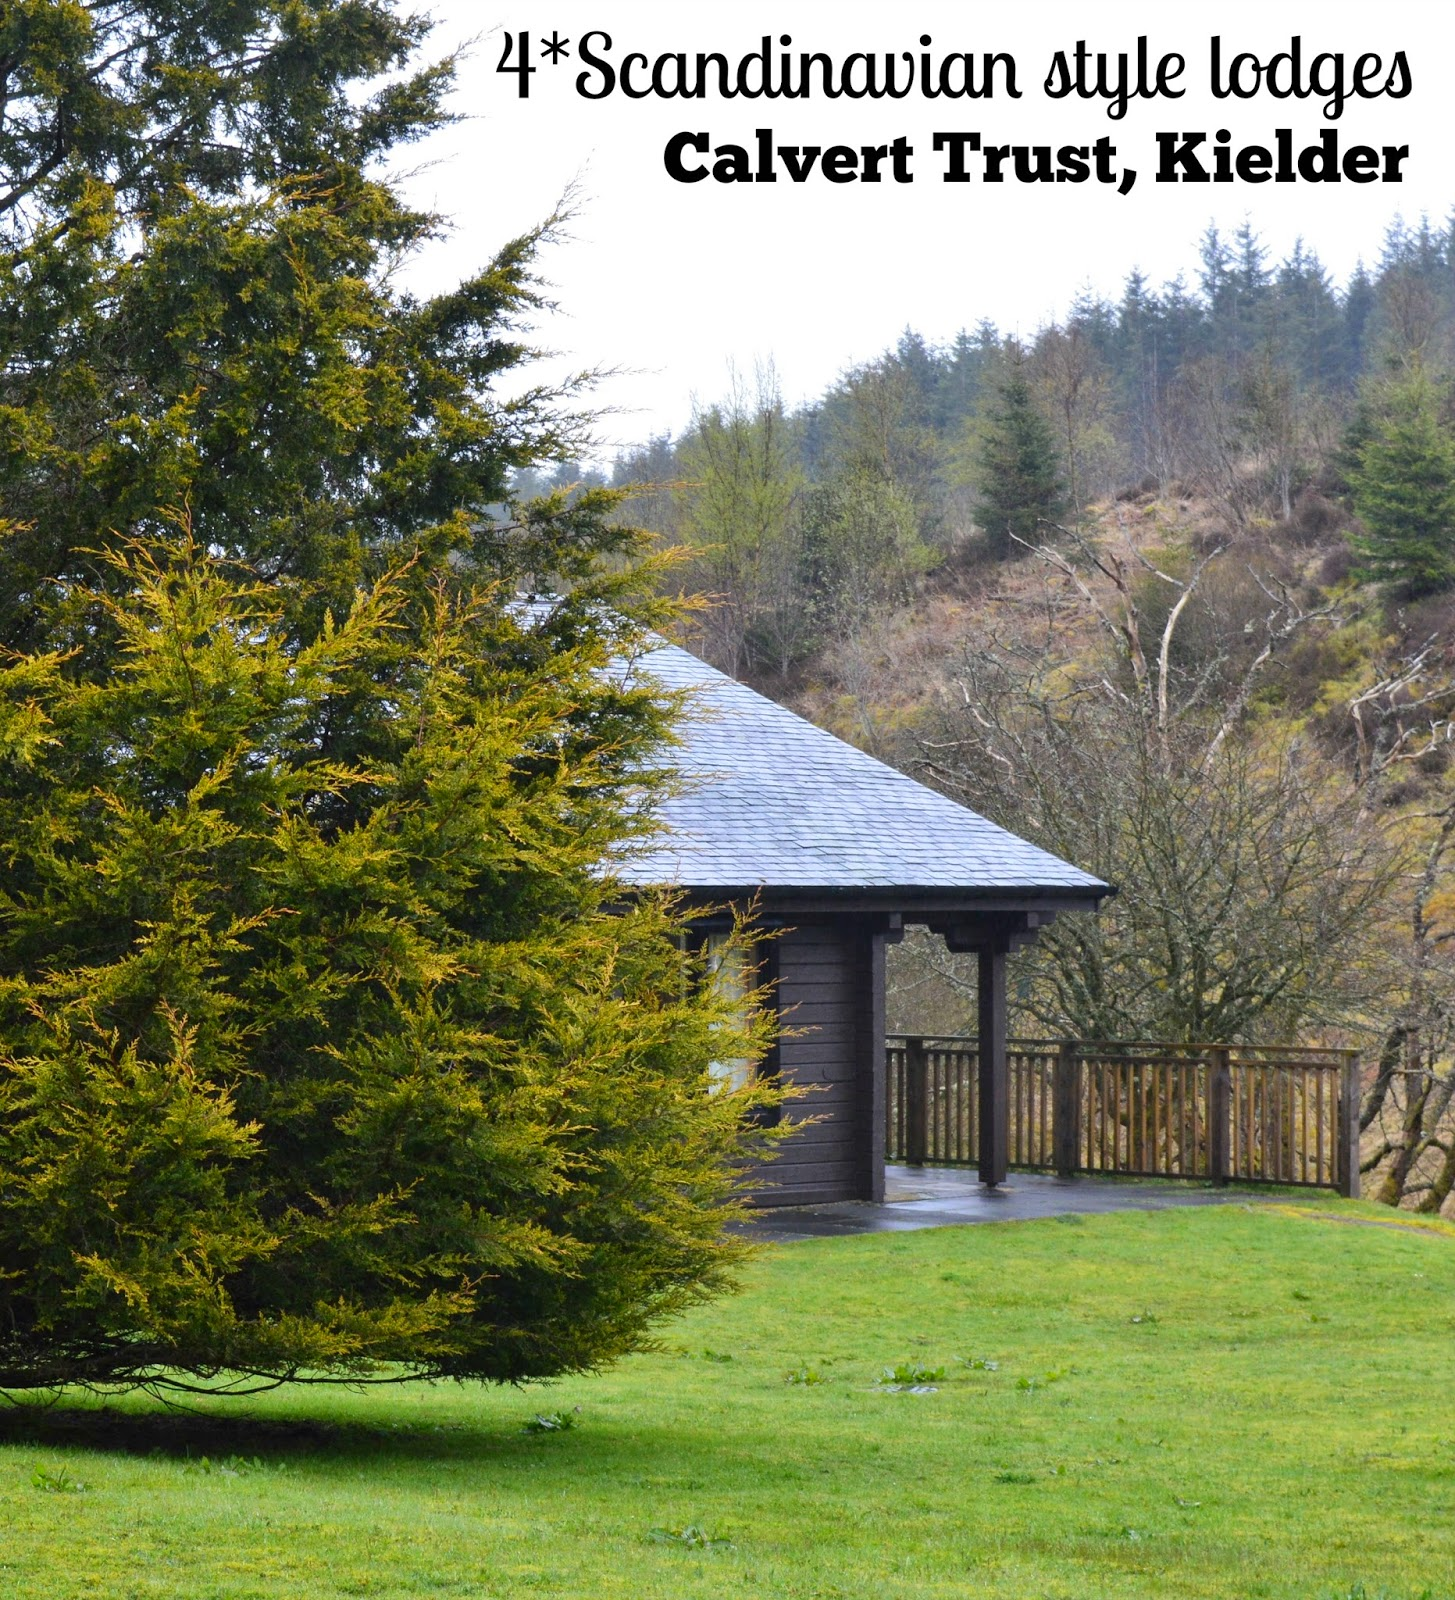 Calvert trust lodge review, Kielder